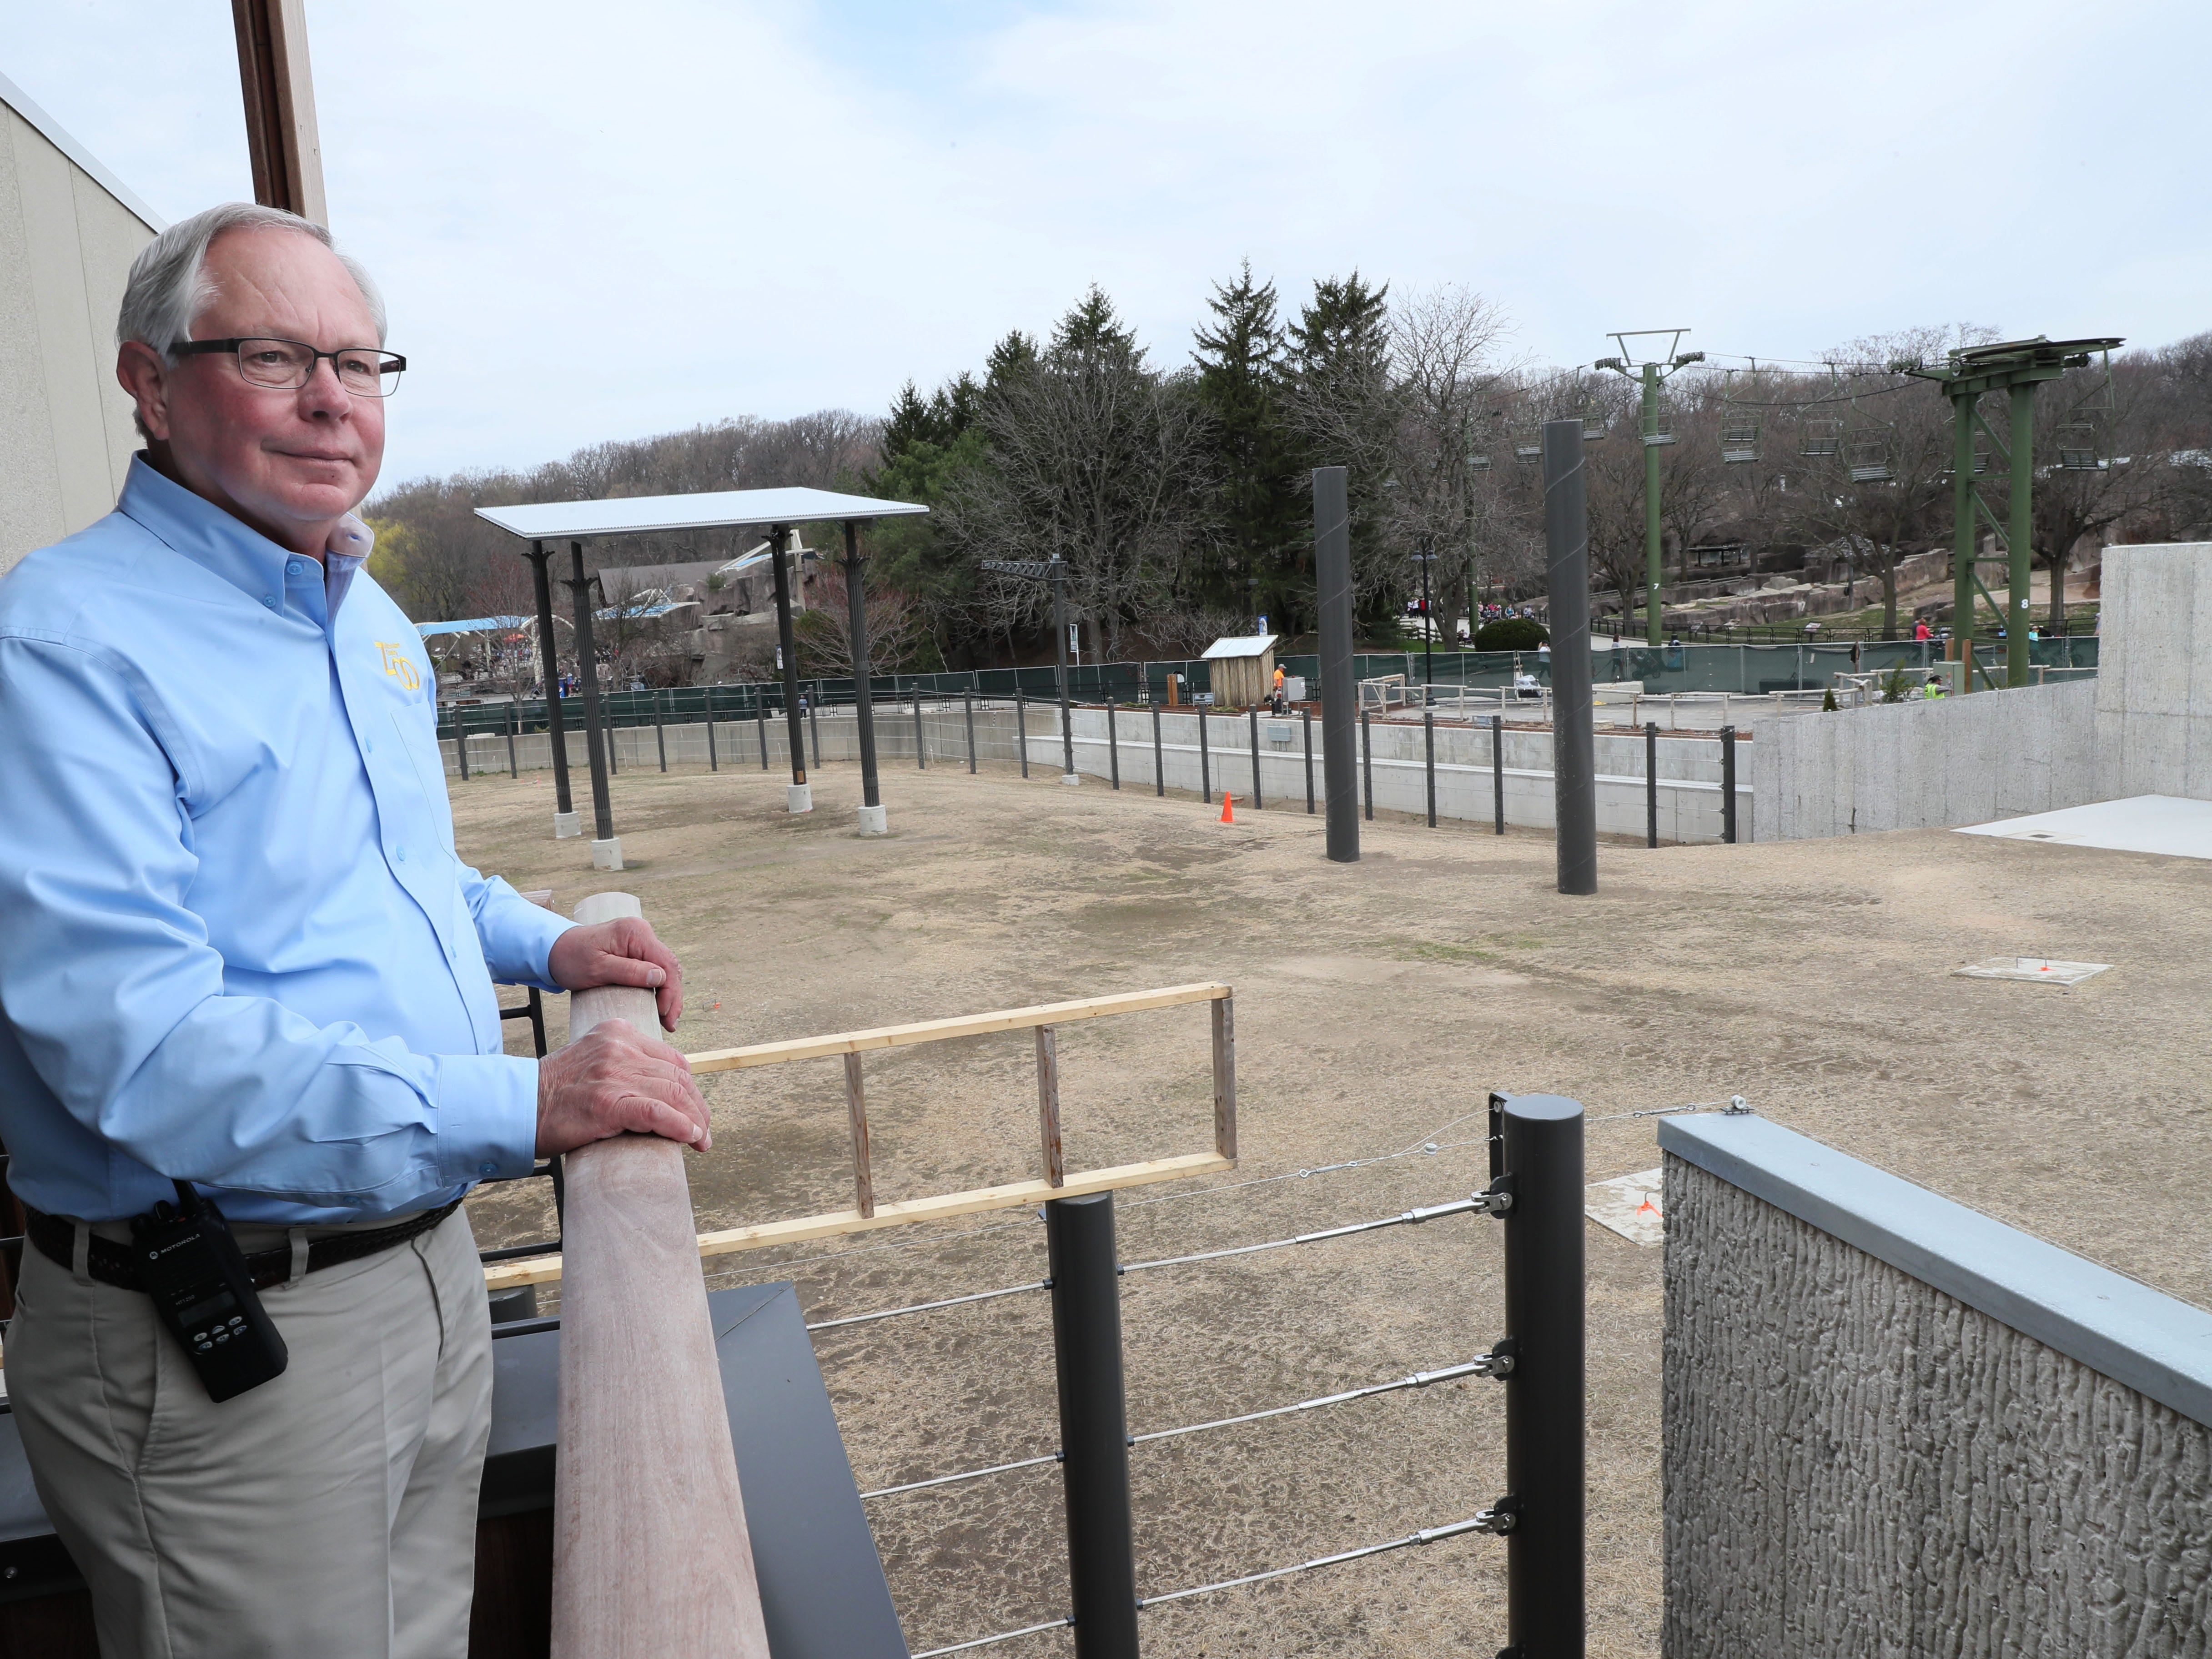 Zoo Director Chuck Wikenhauser looks over a portion of the elephant's outdoor space.